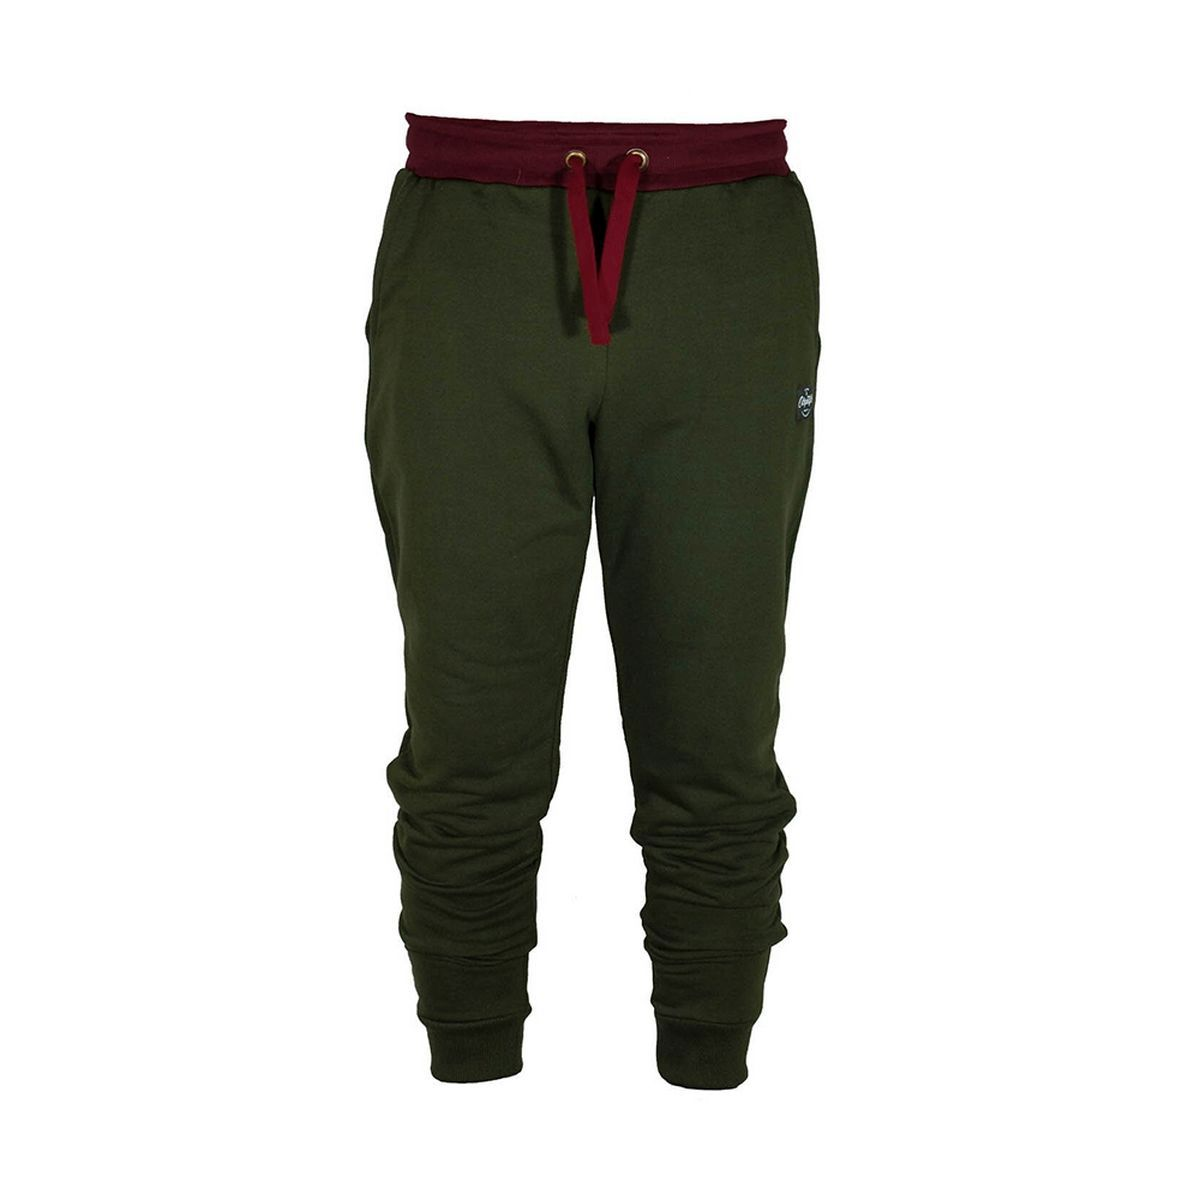 CARPSTYLE Green Forest Joggers - M